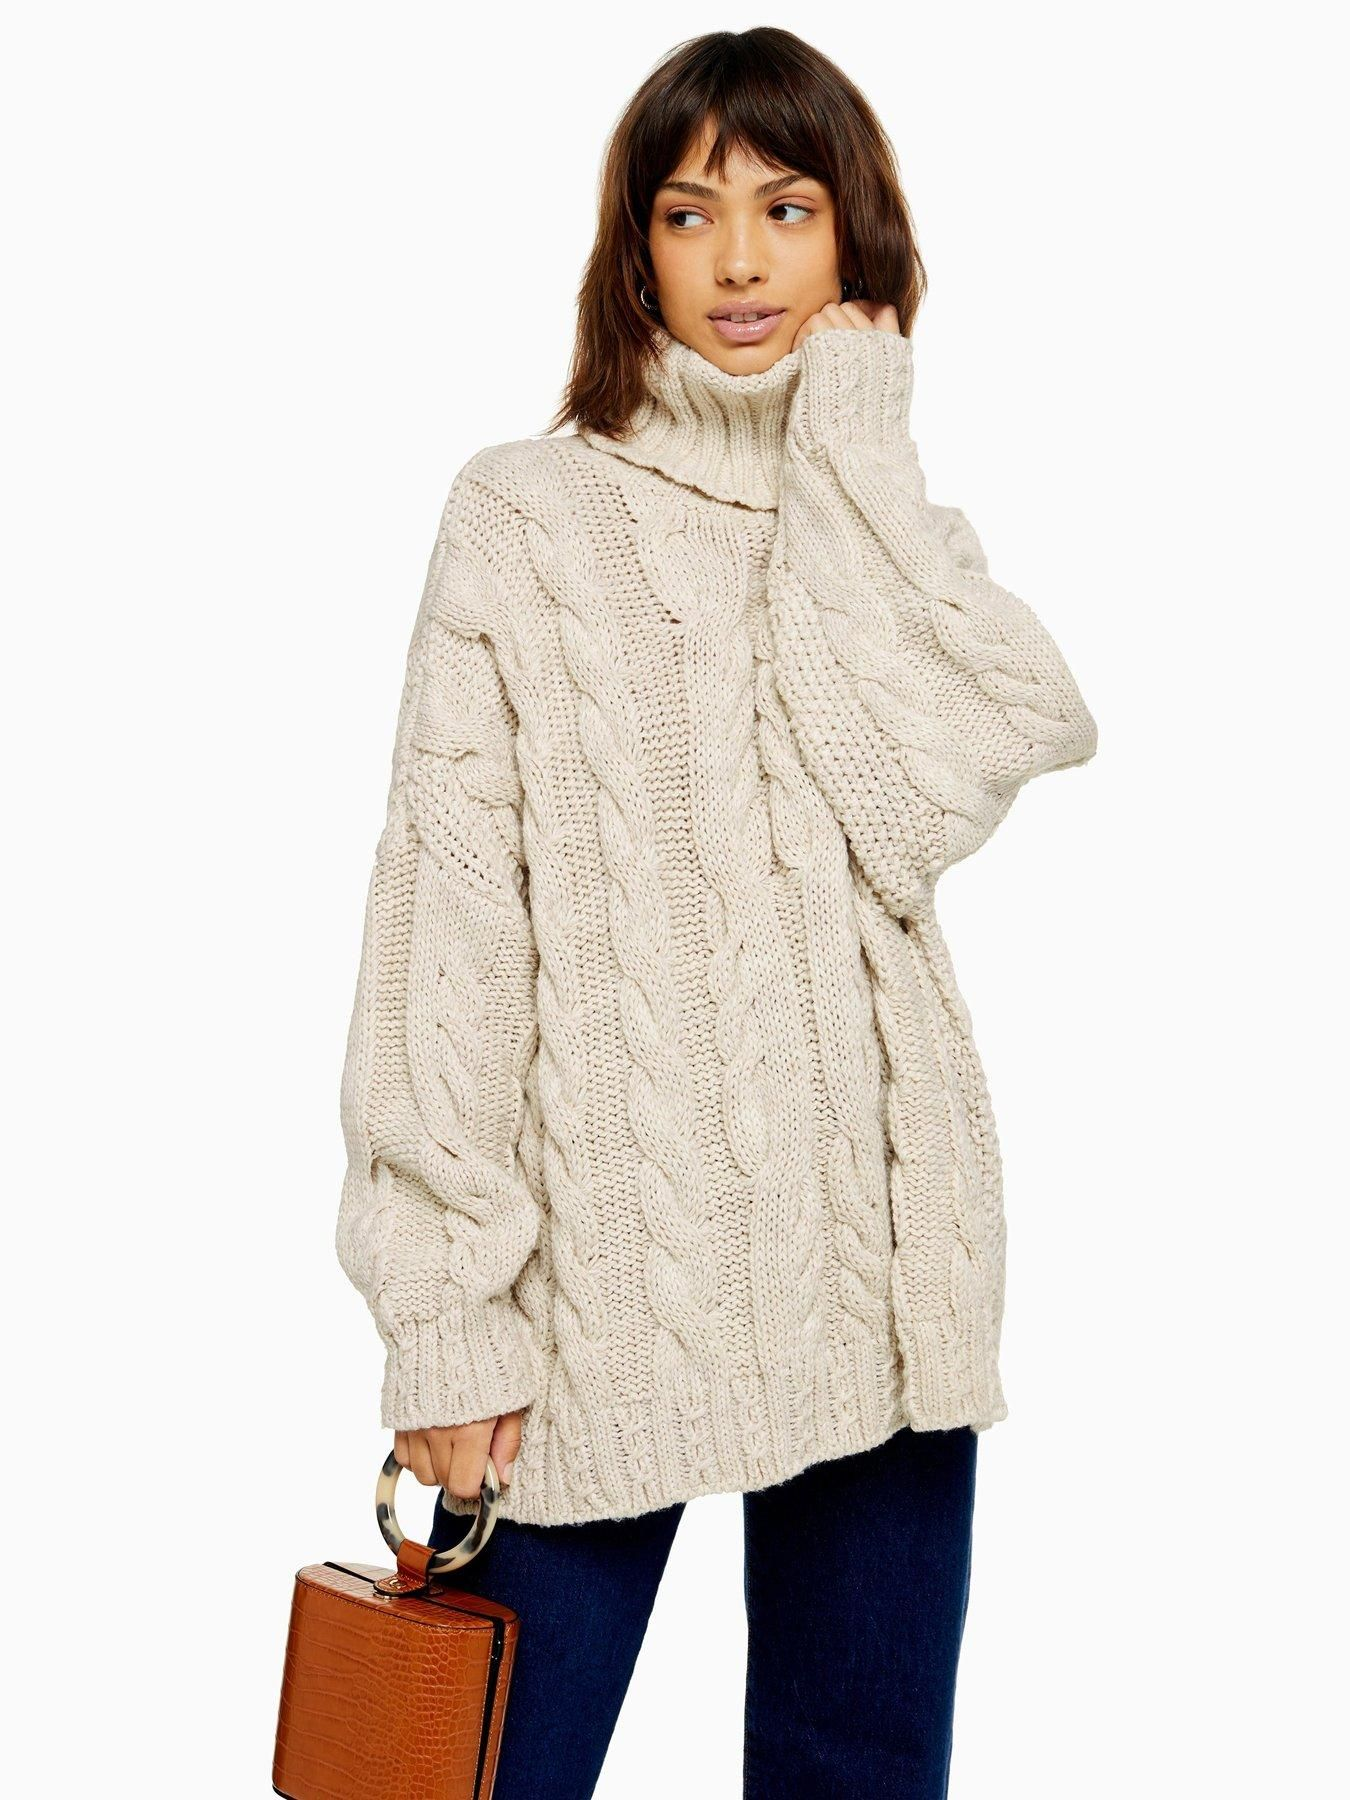 Shop Topshop Jumpers on sale at the